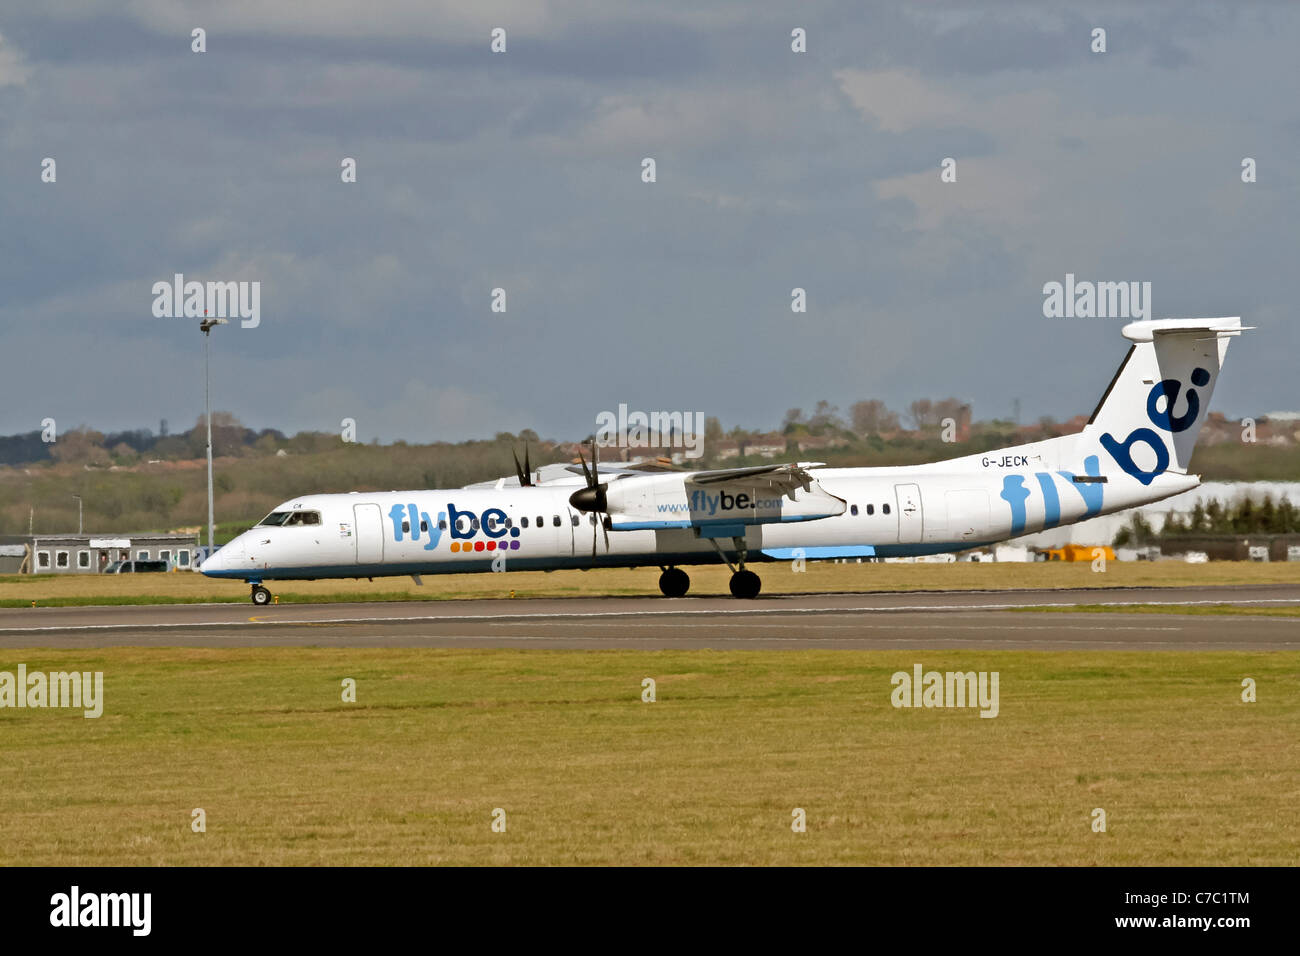 De Havilland Canada DHC-8Q-400 Dash 8, G-JECK, Flybe taking off from Cardiff Airport - Stock Image